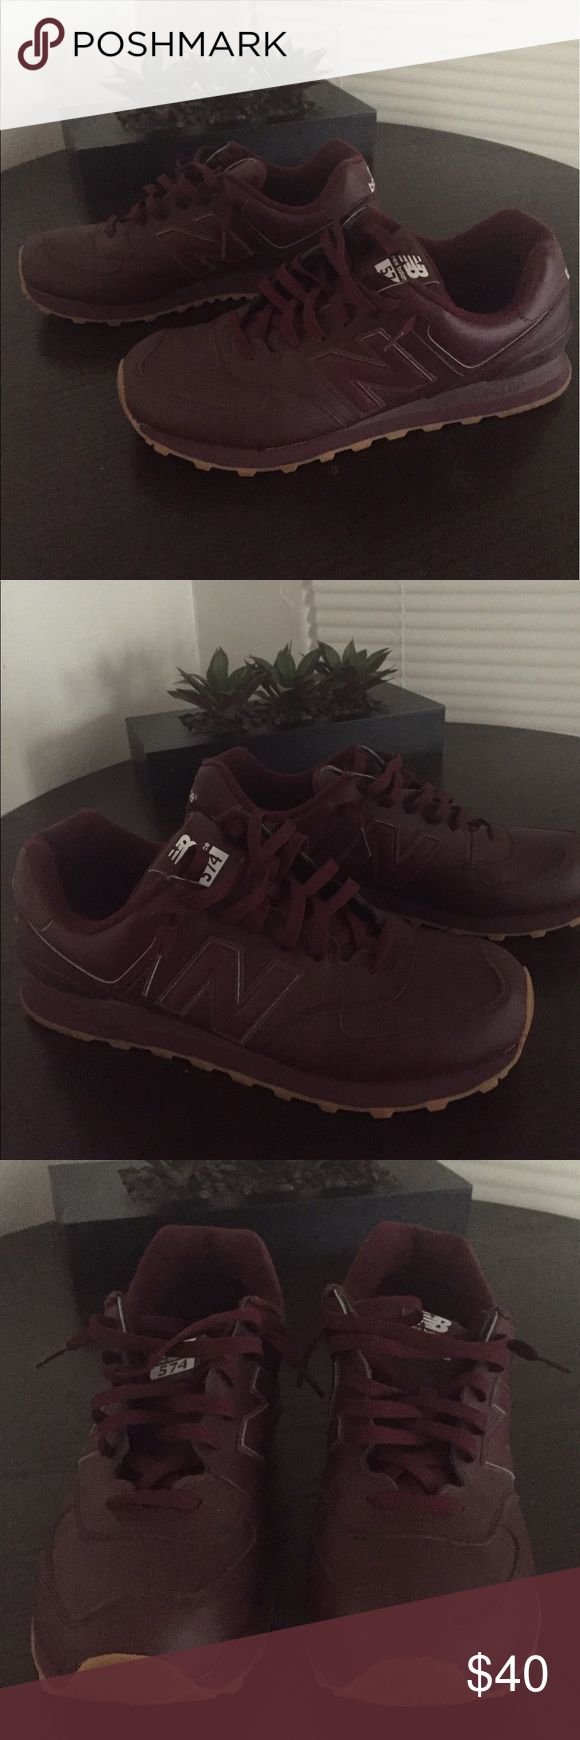 Mens New Balance 574 Burgundy Color, New Balance 574, Excellent Condition, Only worn a few times, Pet free smoke free home, I ship same day New Balance Shoes